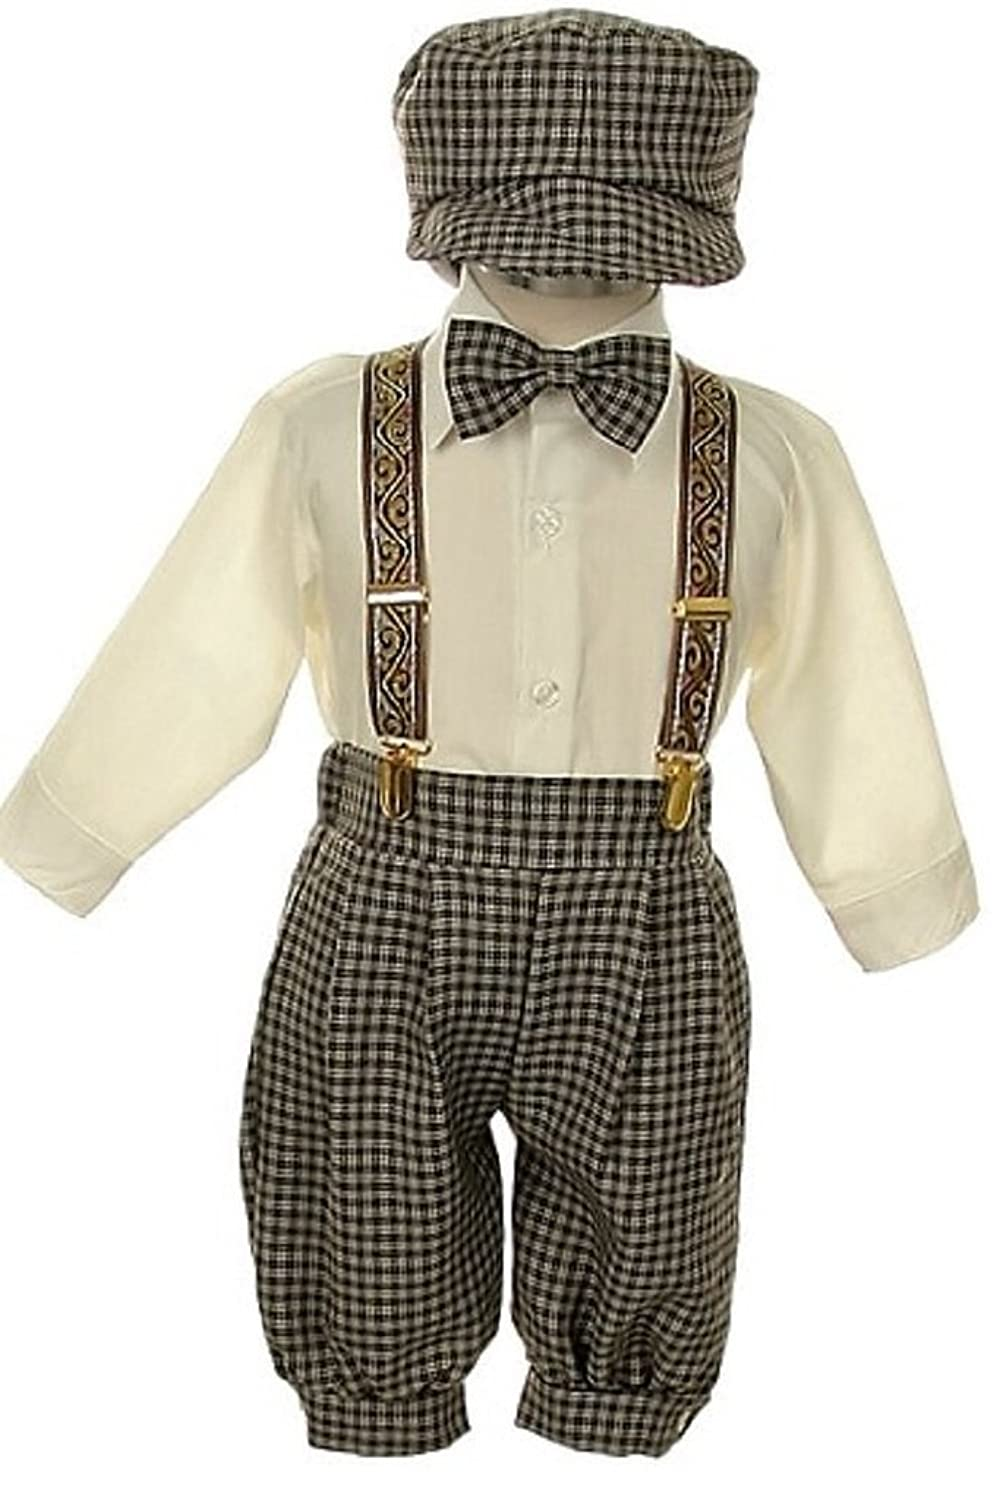 1920s Children Fashions: Girls, Boys, Baby Costumes iGirlDress Vintage Dress Suit-Tuxedo Knickers Outfit Set Baby Boys & Toddler $35.00 AT vintagedancer.com